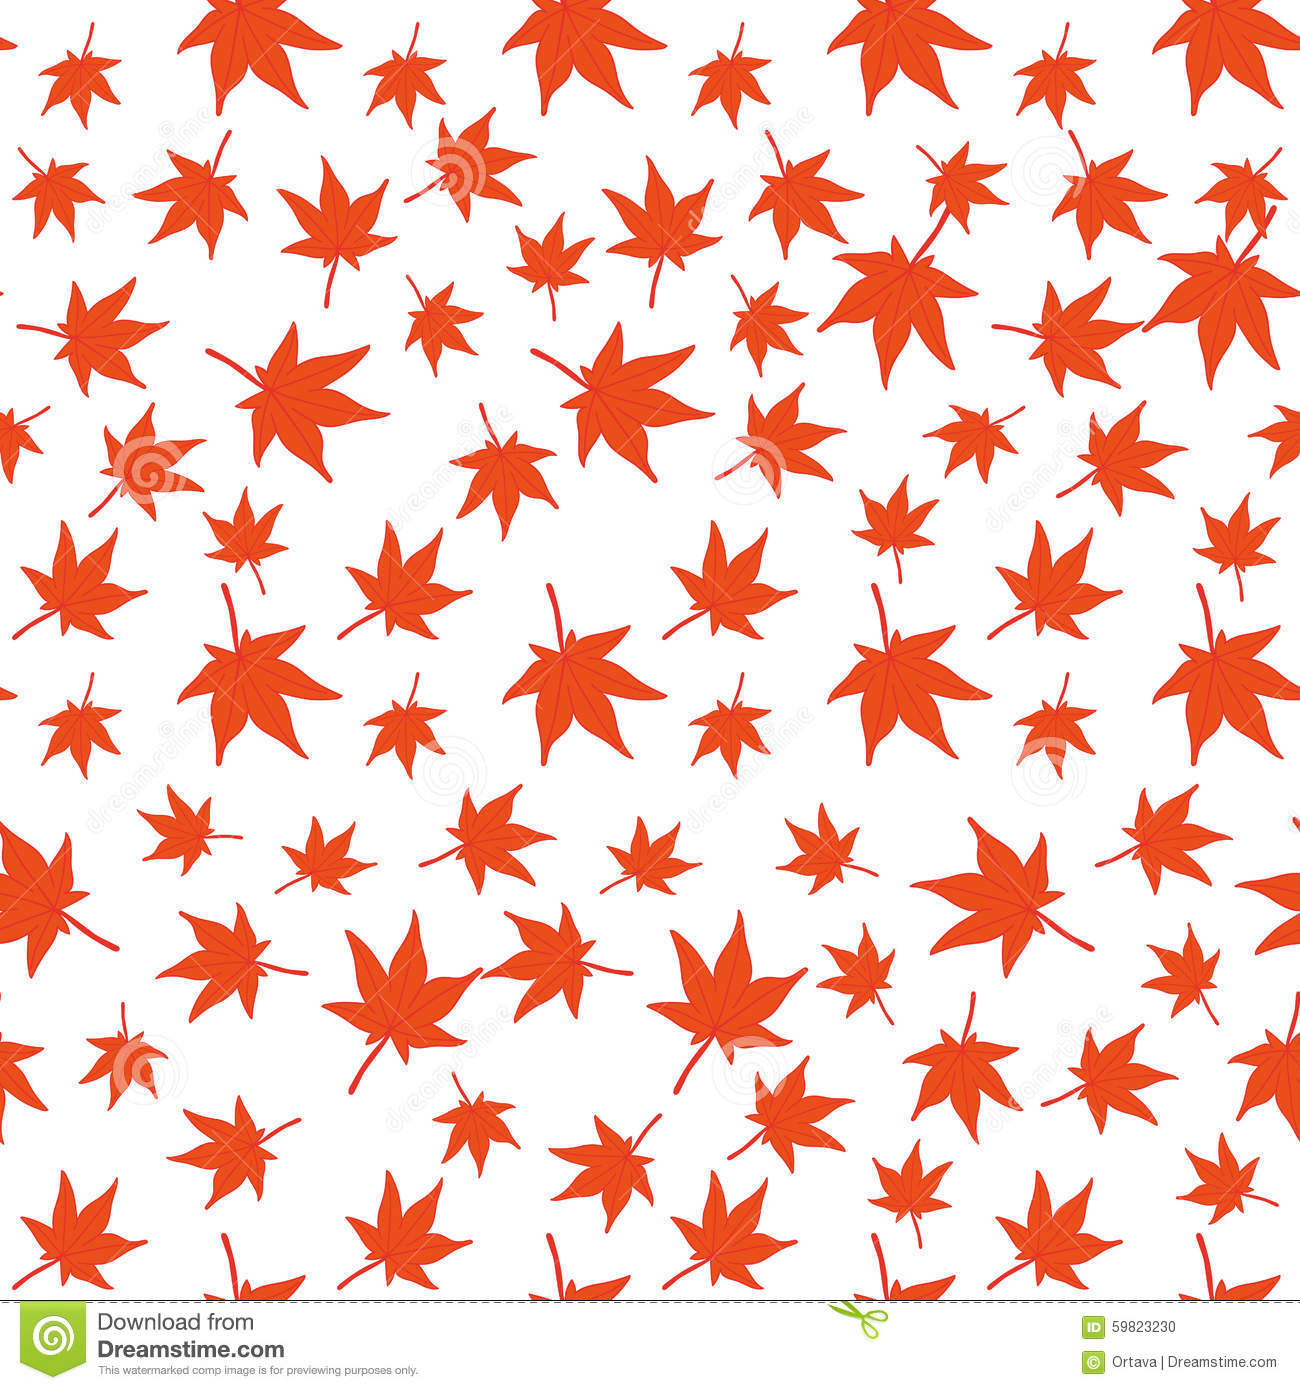 red leaves wallpaper pattern - photo #8